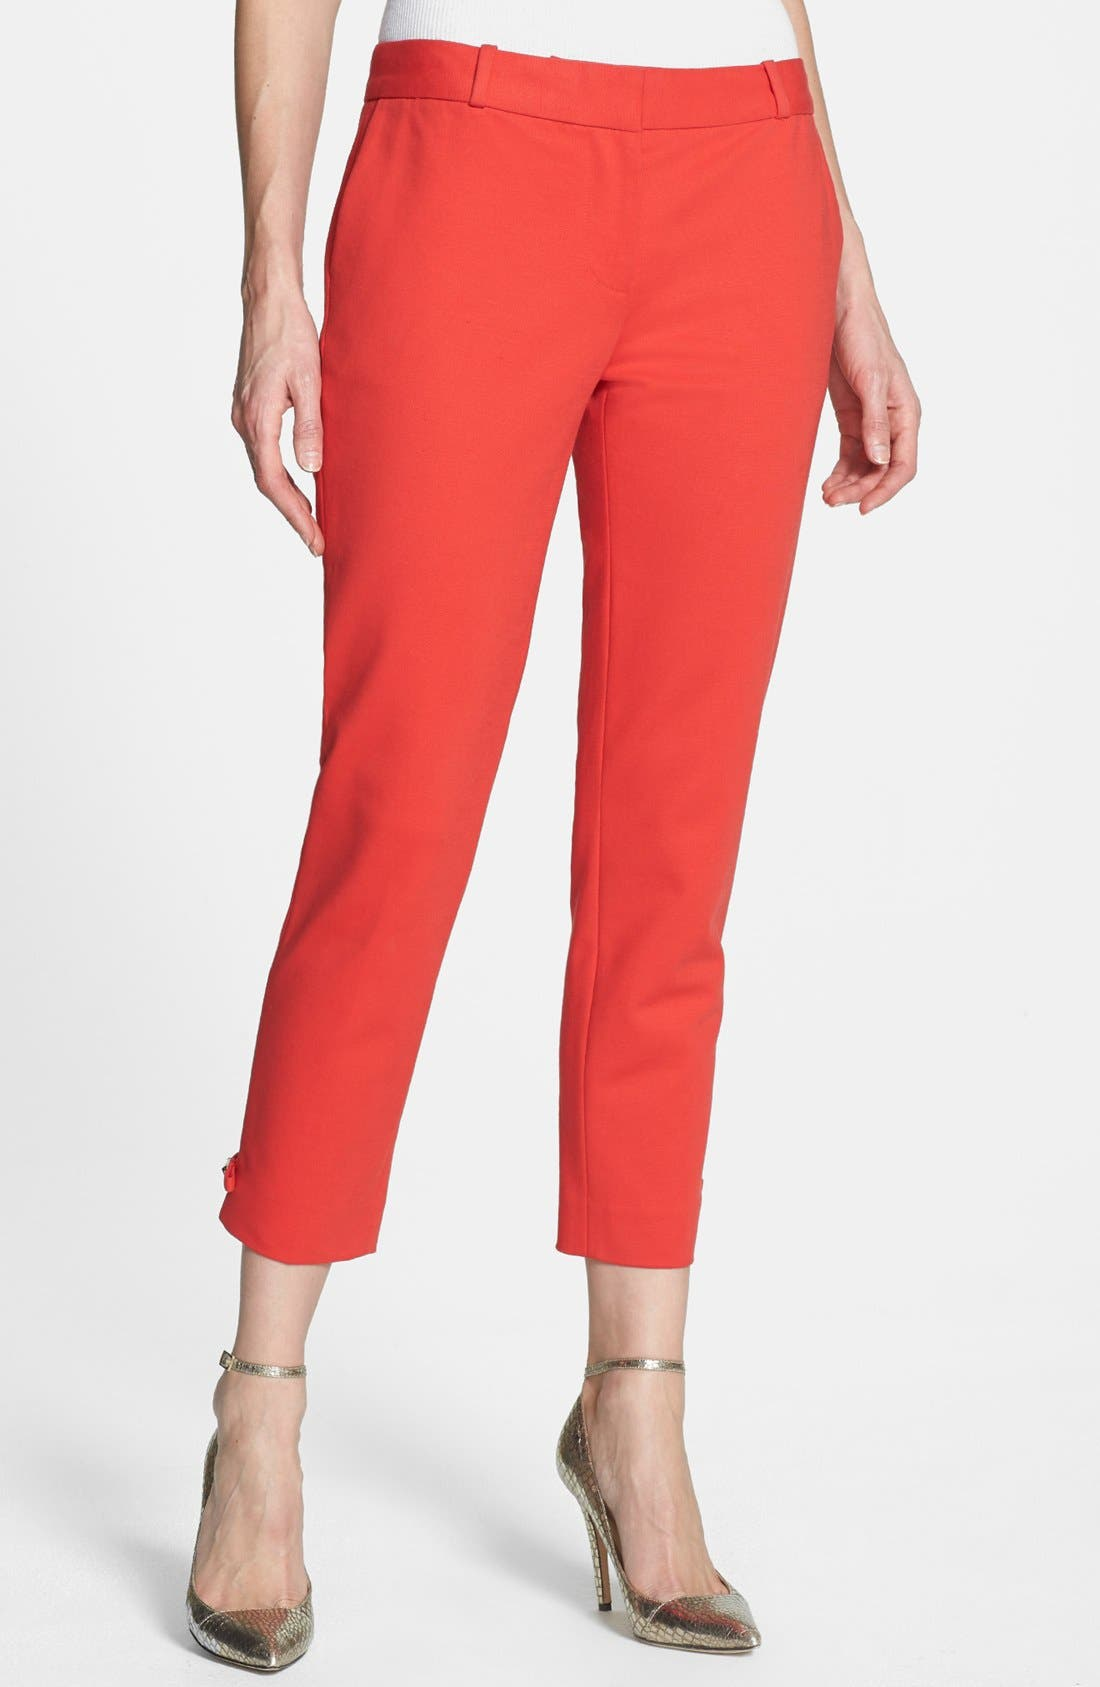 Alternate Image 1 Selected - kate spade new york 'jackie' stretch cotton capri pants